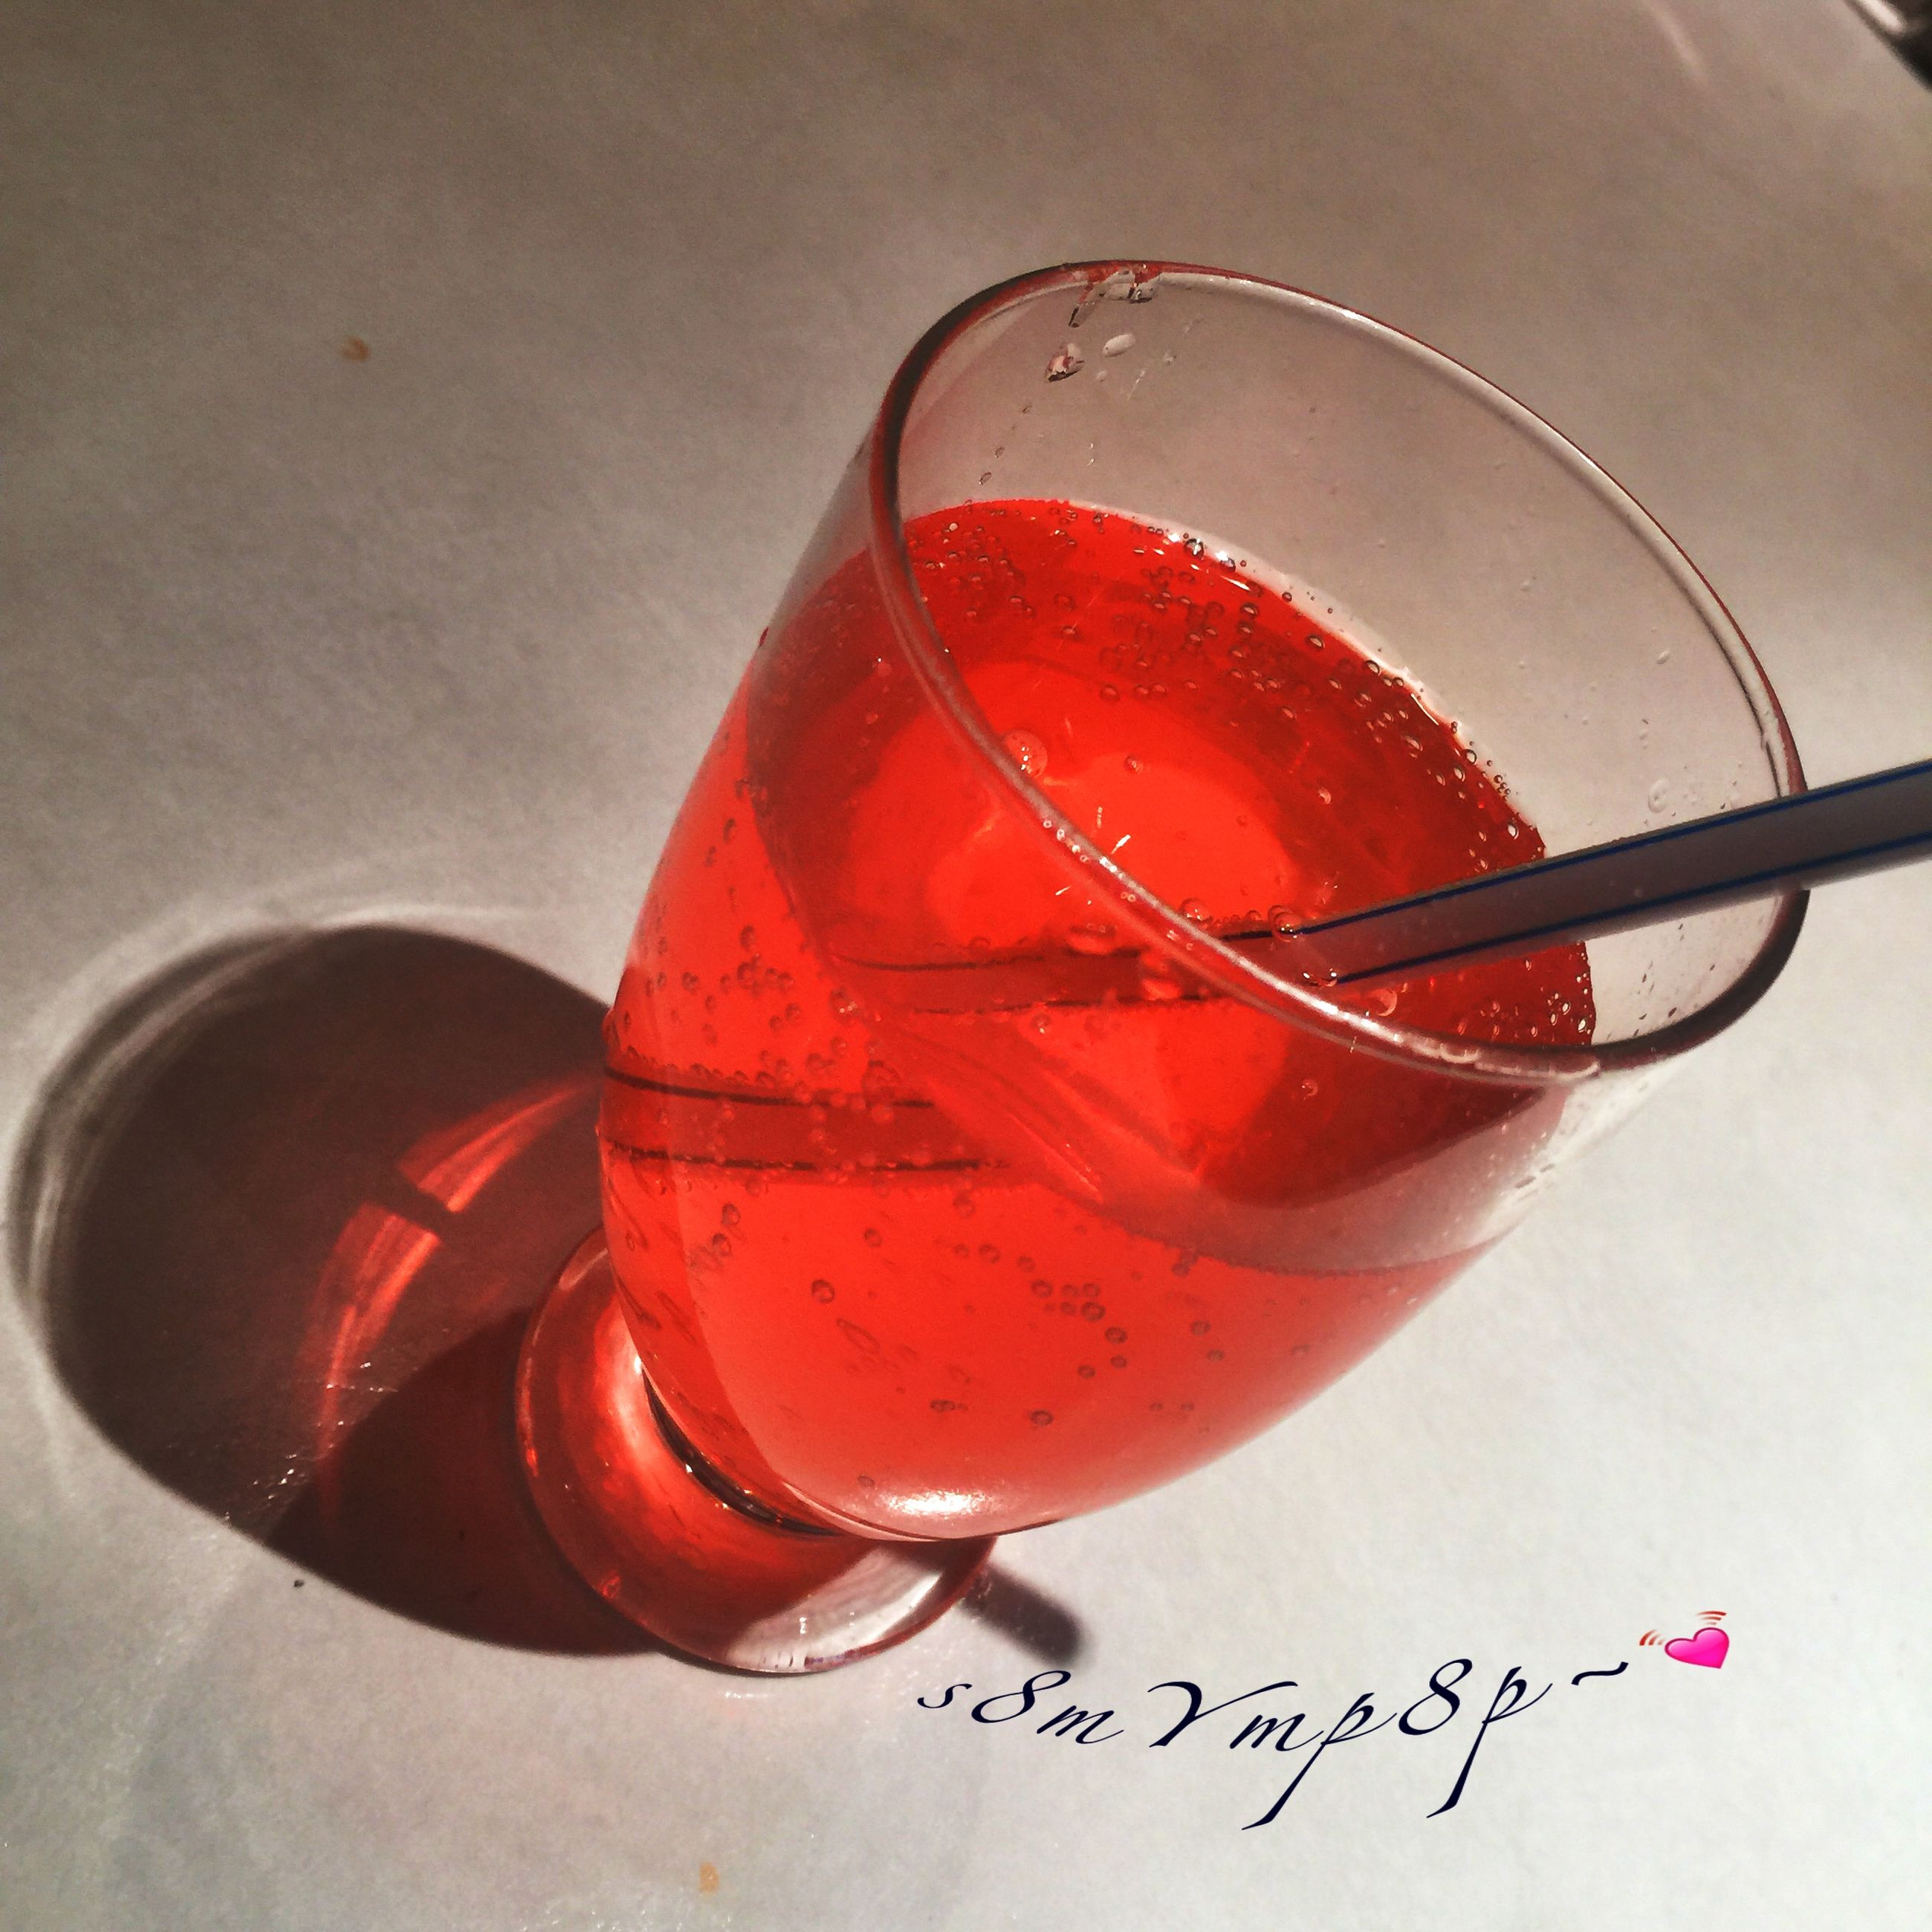 red, close-up, still life, indoors, food and drink, glass - material, high angle view, table, transparent, no people, reflection, day, cold temperature, text, heart shape, drink, communication, wet, focus on foreground, pink color